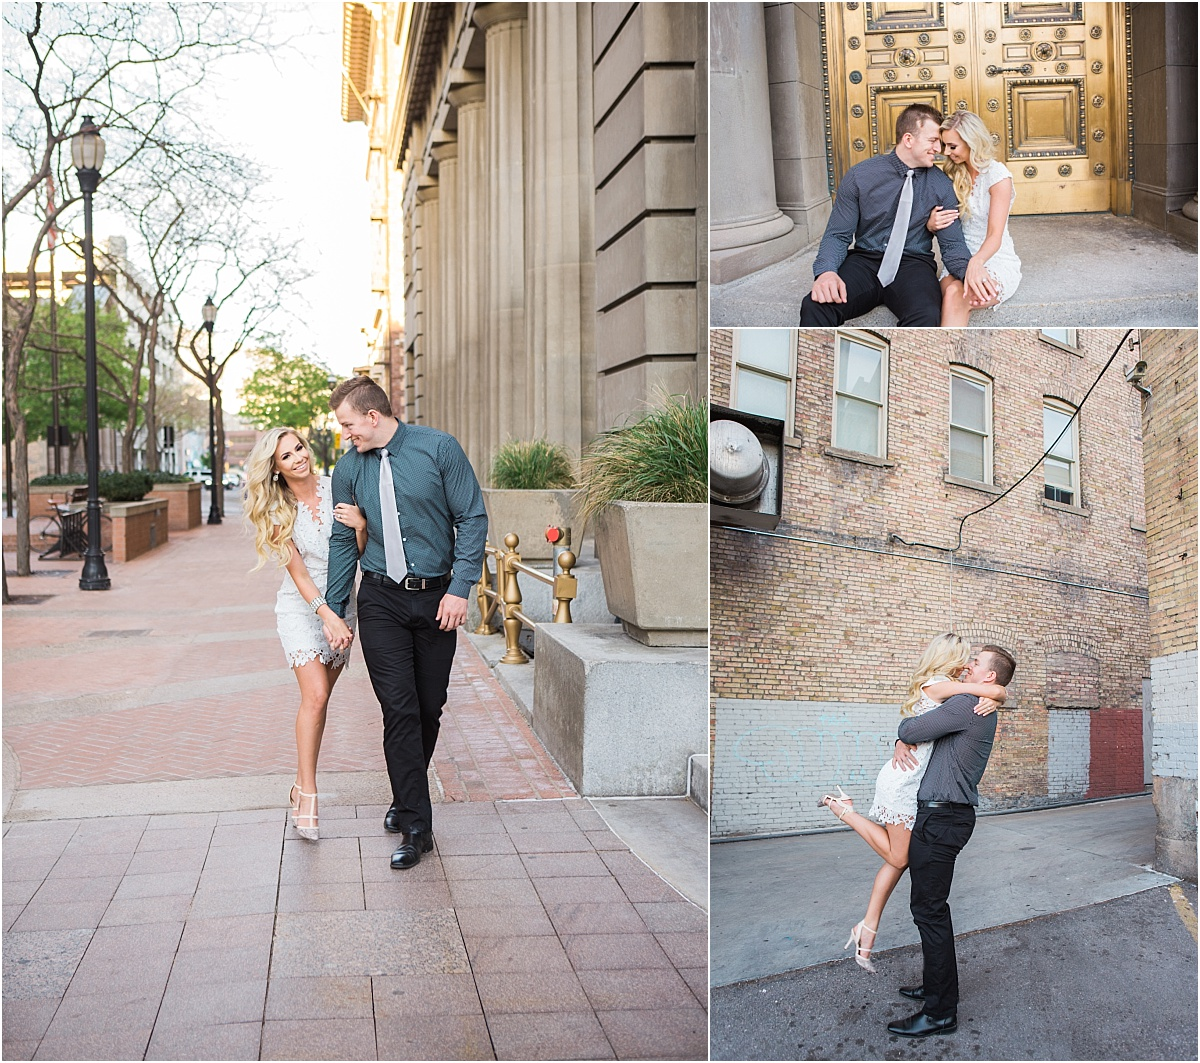 Downtown Salt Lake City Engagements | Utah Wedding Photographer